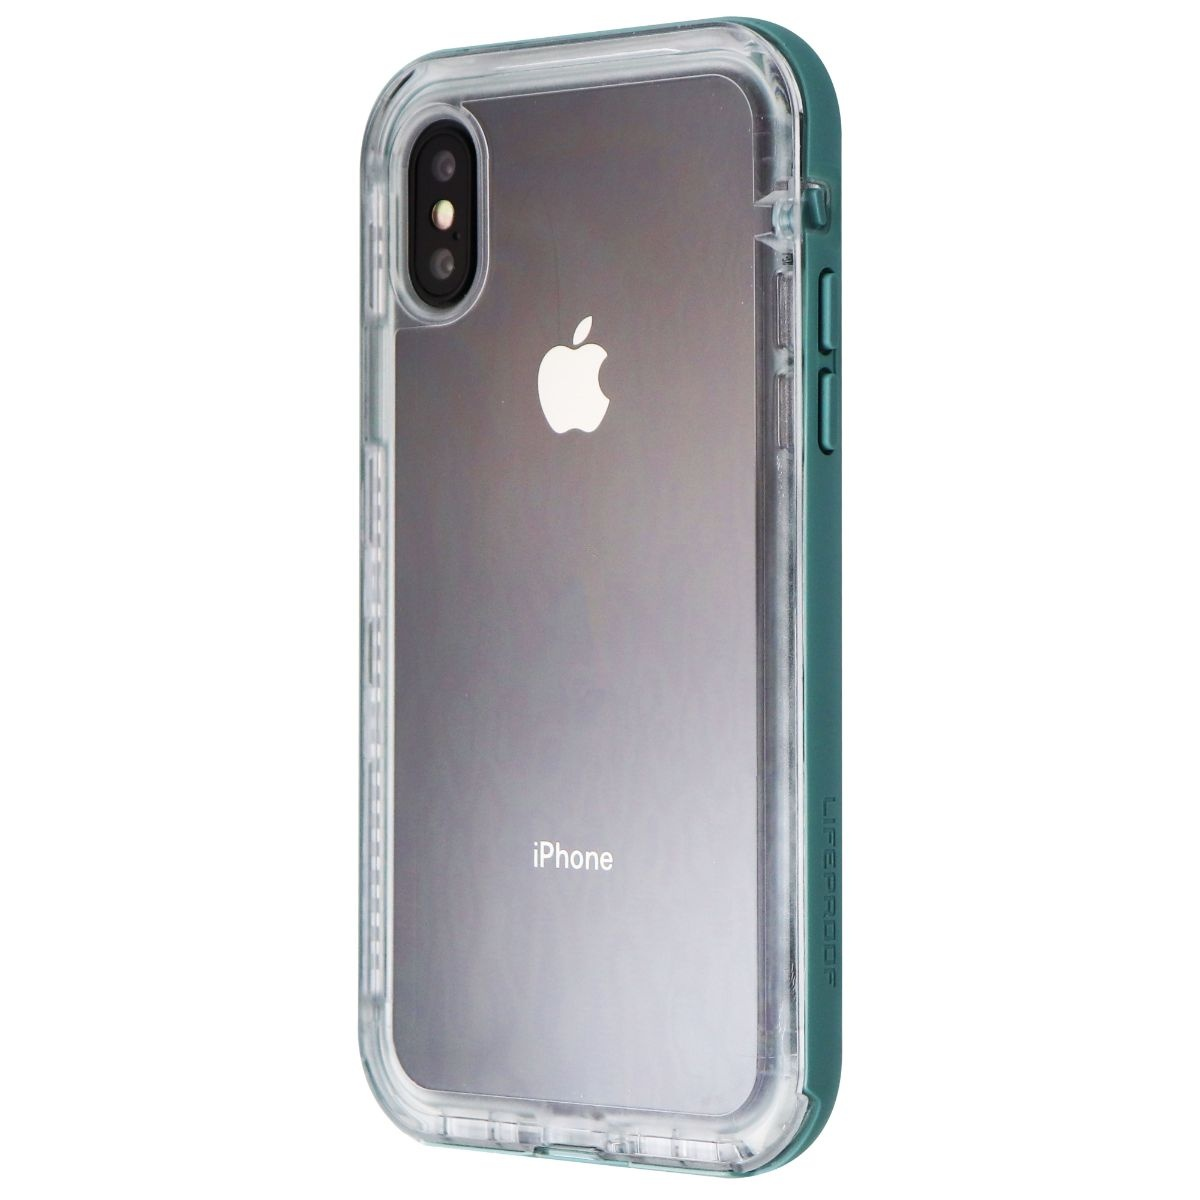 LifeProof Next Series Case for iPhone X (ONLY) - Seaside Blue / Clear